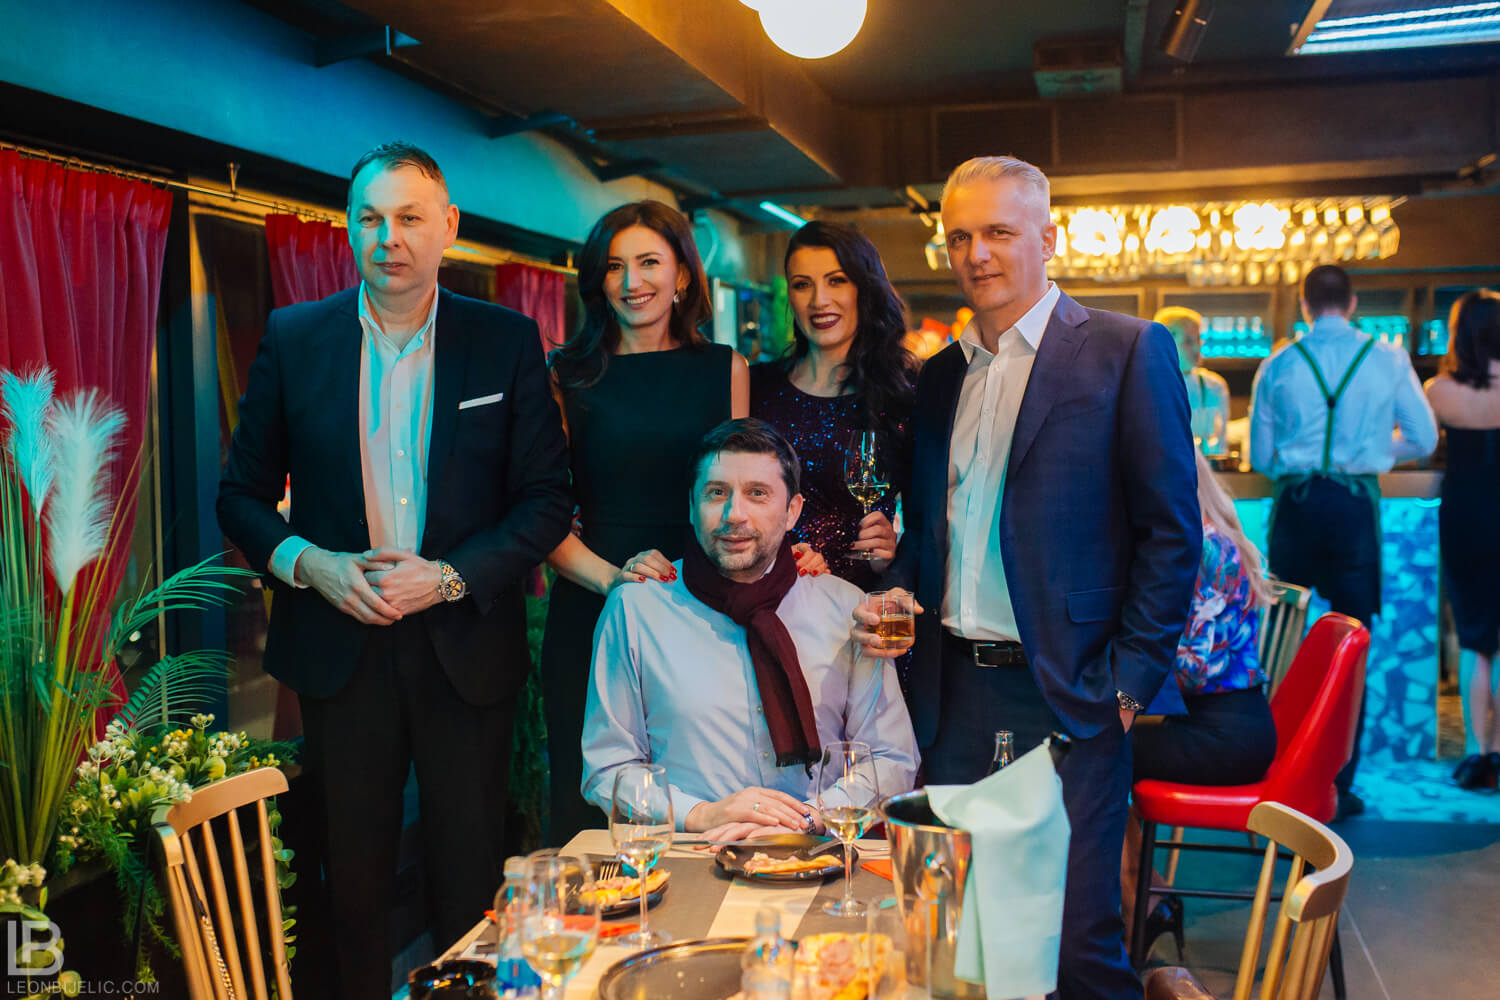 RESTAURANT BIZARRE DIVERSE BAR - OPENING DAY - BANJA LUKA - LEON BIJELIC COMMERCIAL PHOTOGRAPHY